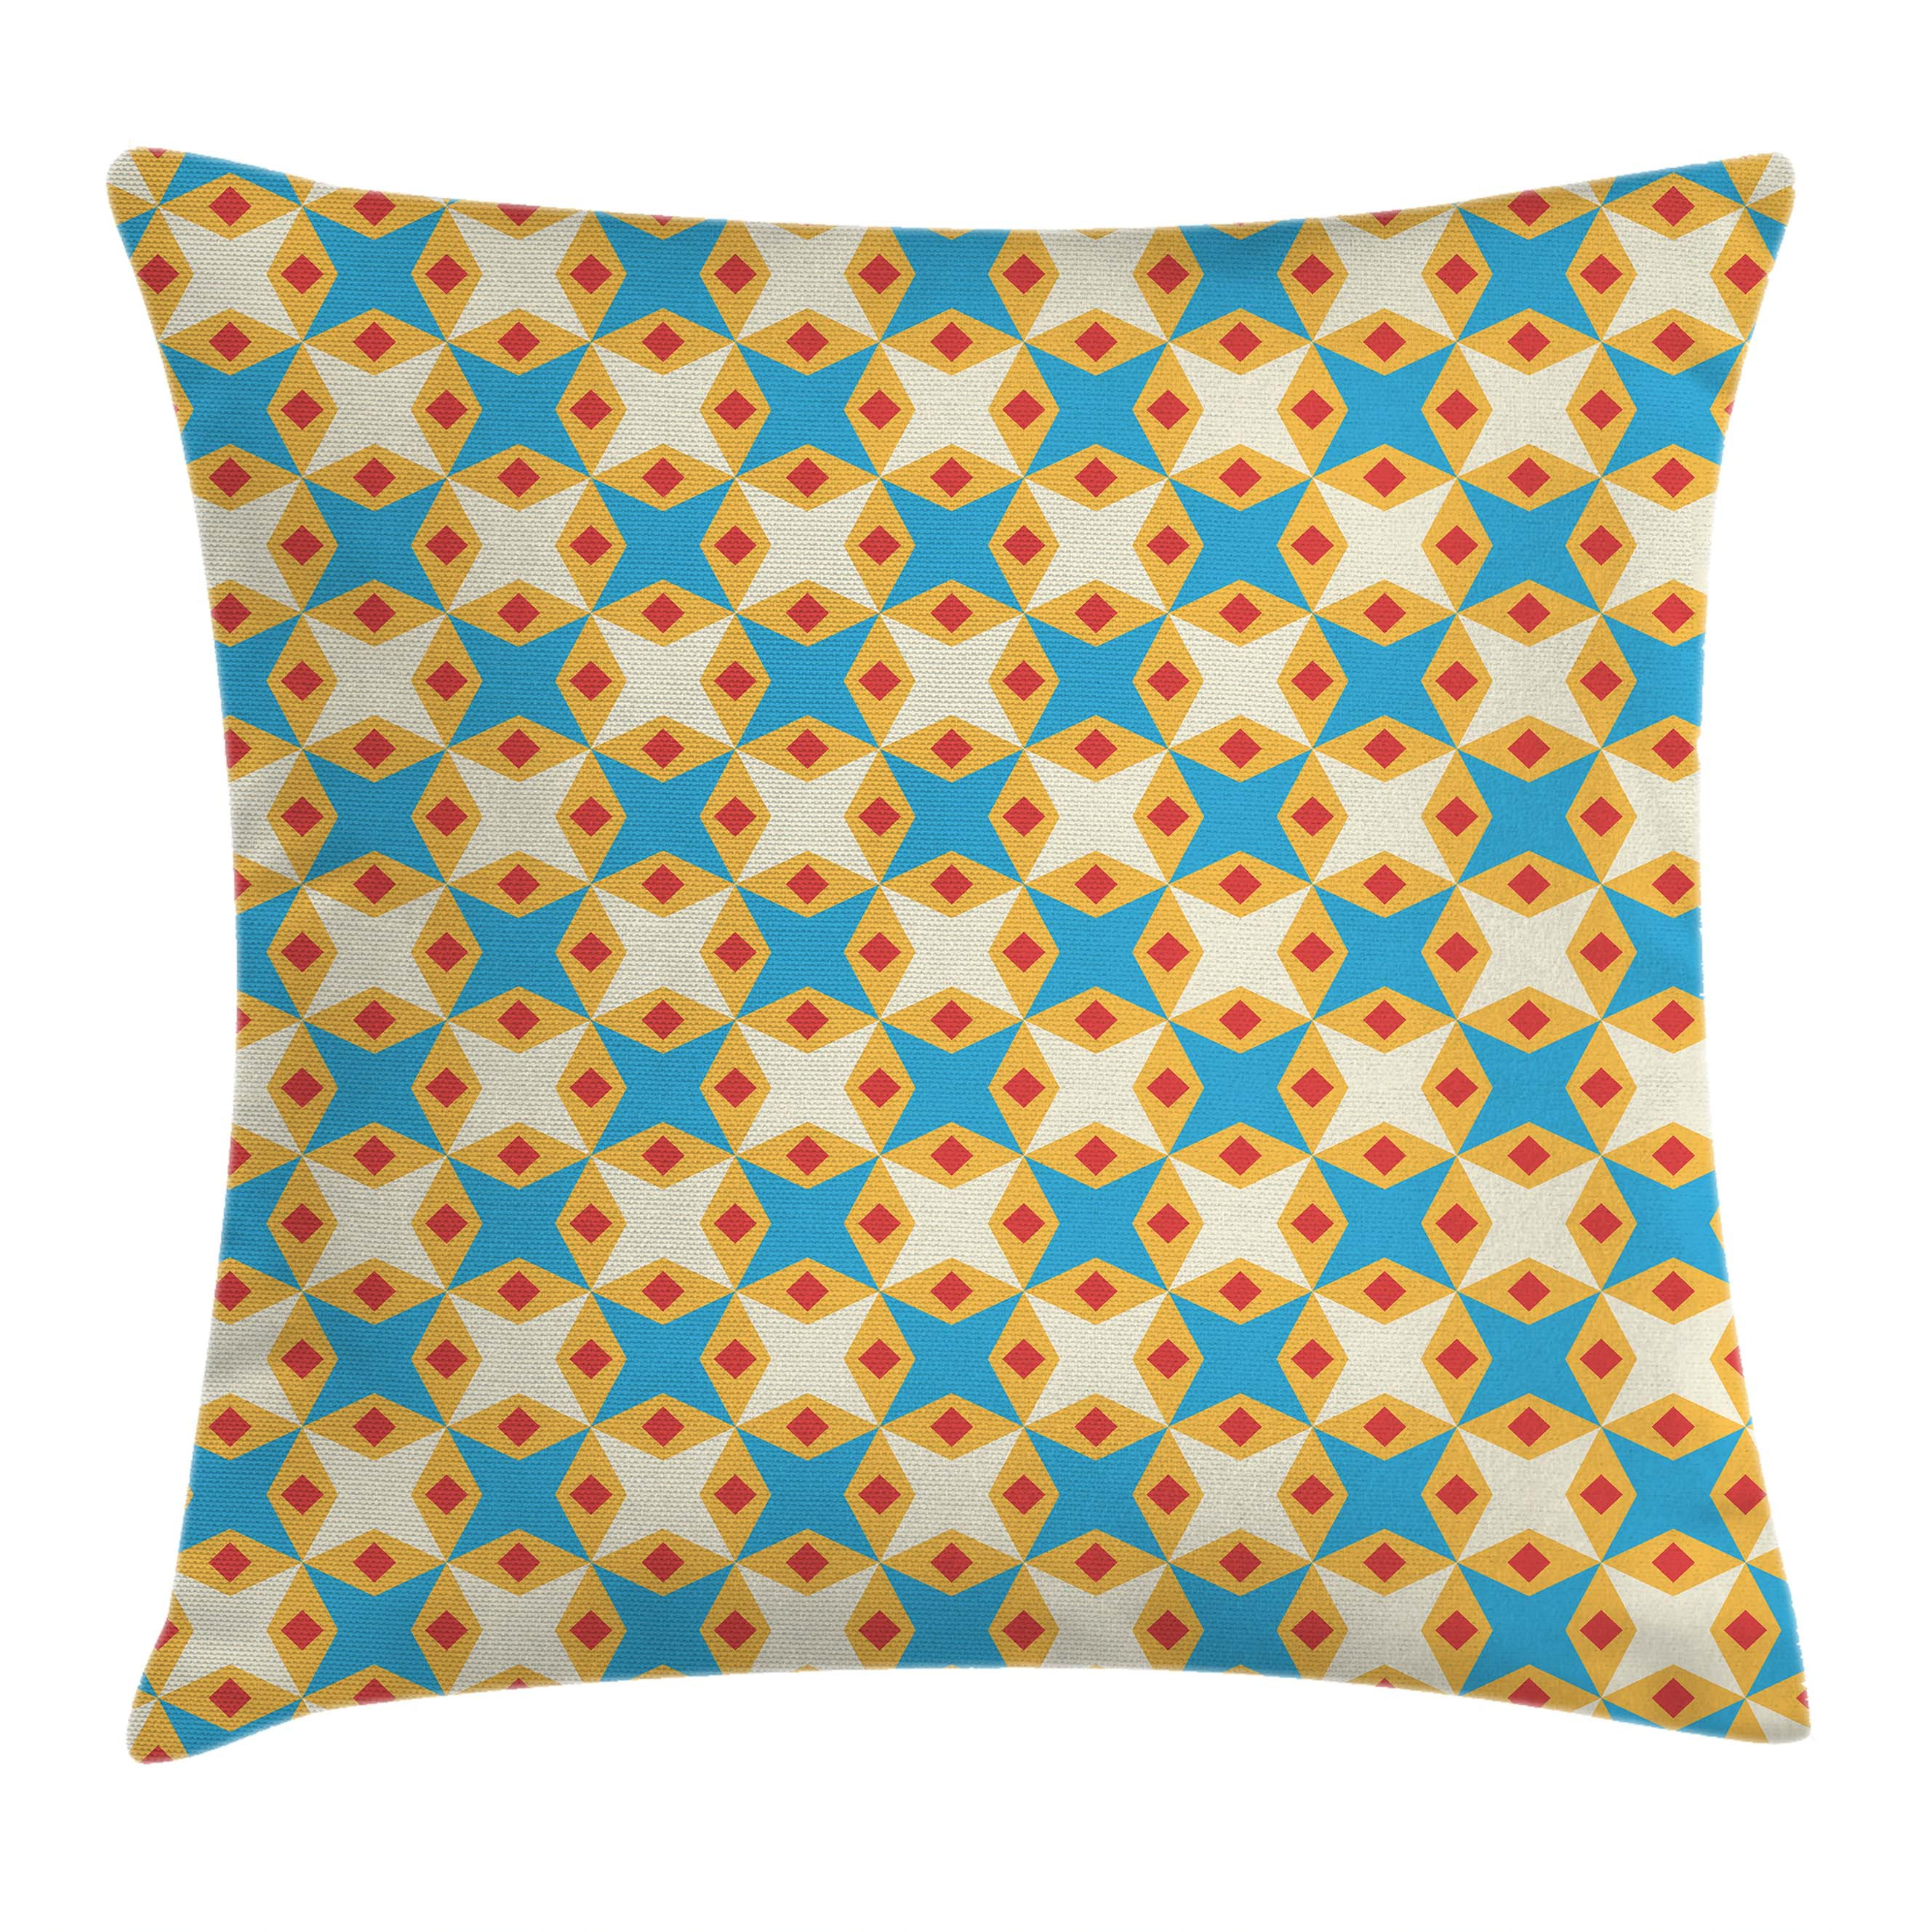 Kids Throw Pillow Cushion Cover, Flower Motifs in Shabby Colors Vintage Ornamental Pattern Geometrical, Decorative Square Accent Pillow Case, 16 X 16 Inches, Sky Blue Marigold Cream, by Ambesonne